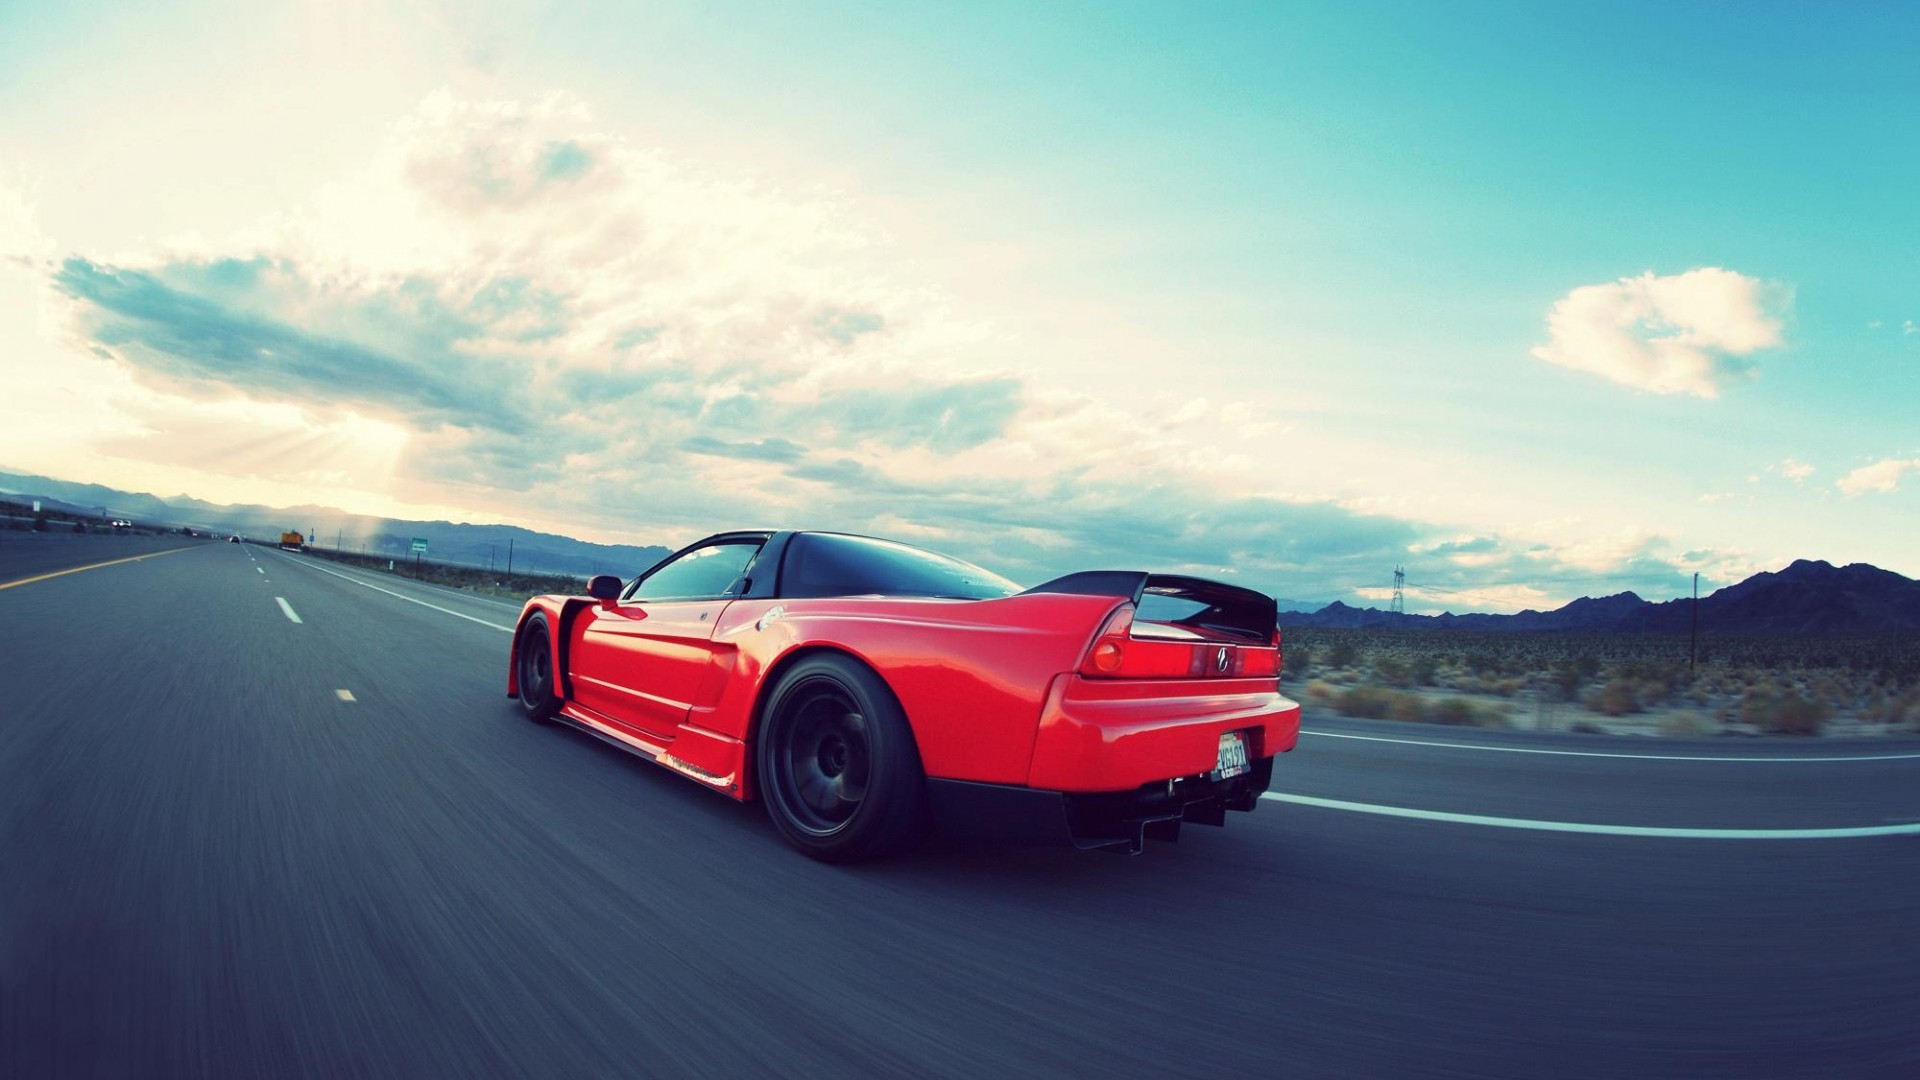 Wallpaper Top 10 JDM - Honda NSX